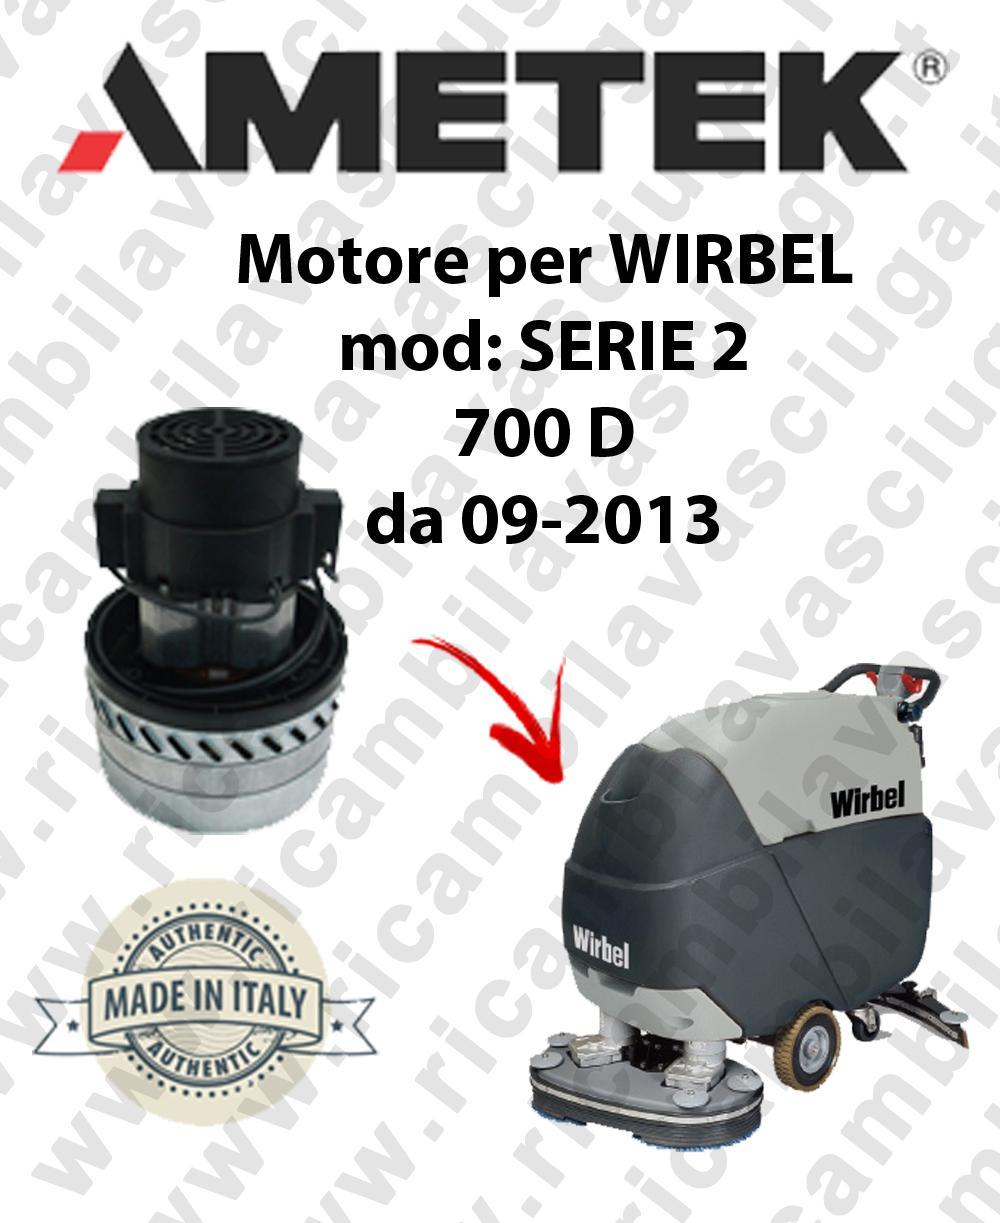 SERIE 2 700 D from 09-2013 Ametek vacuum motor for scrubber dryer WIRBEL